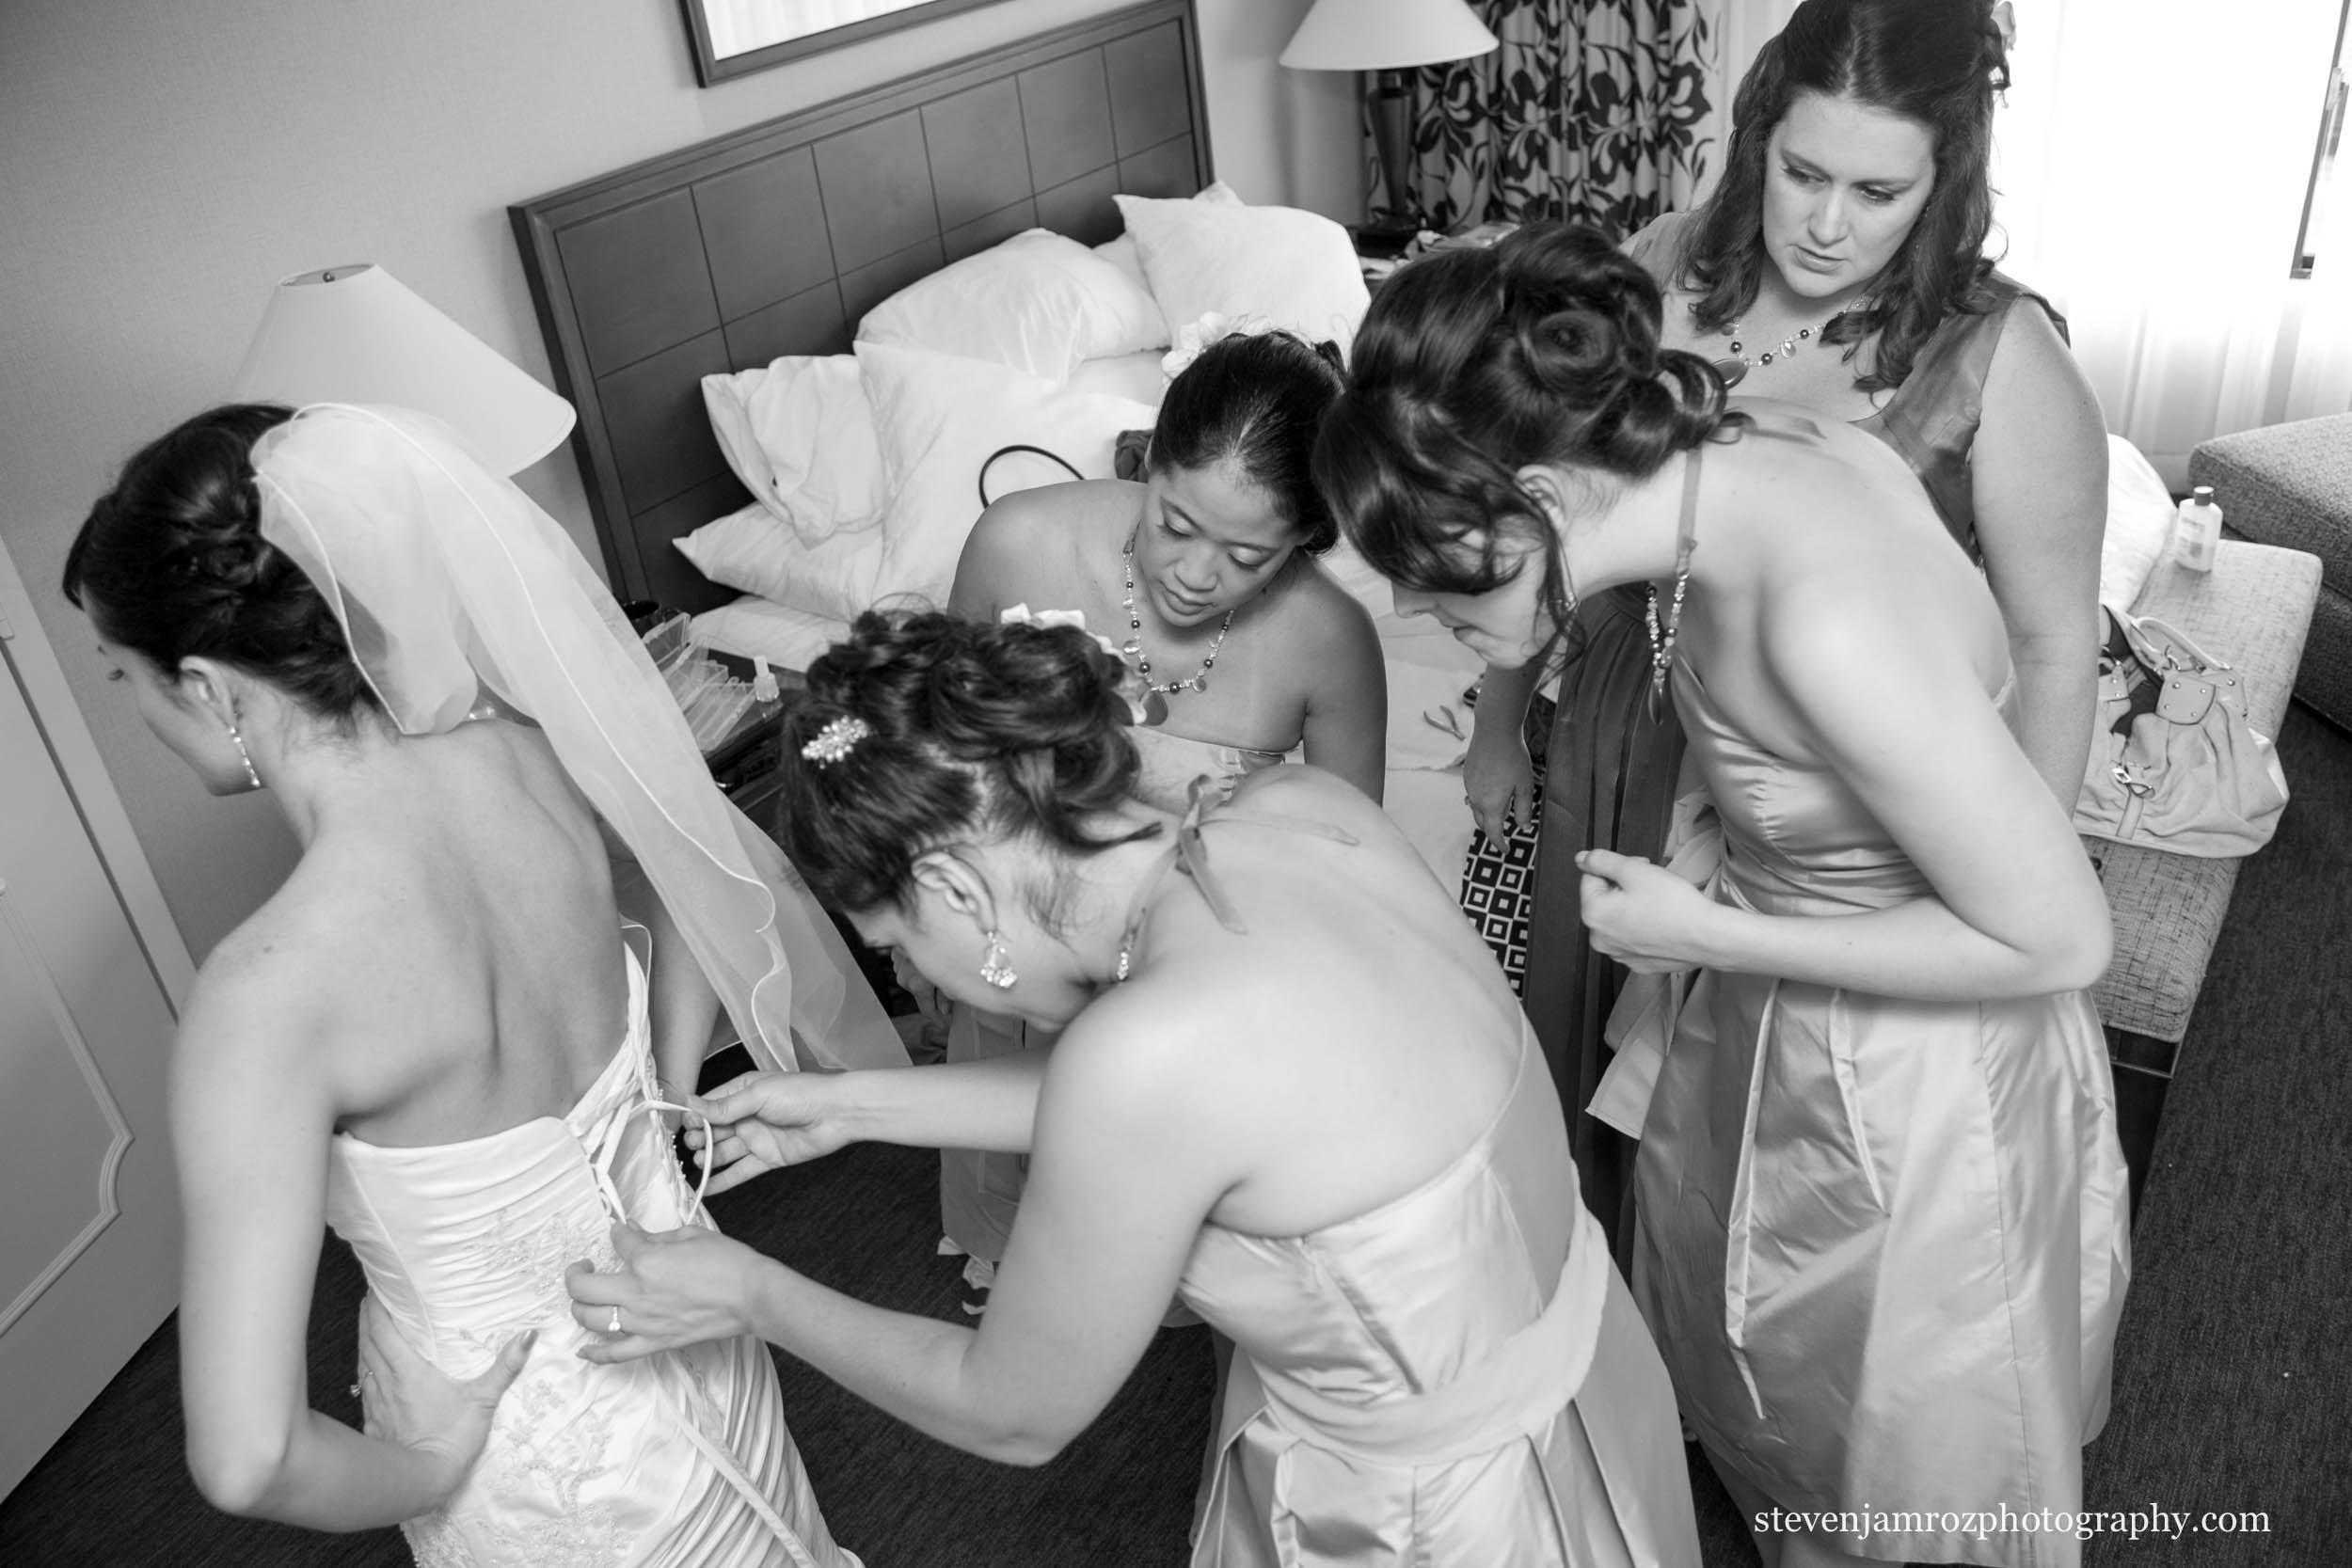 steven-jamroz-photography-getting-ready-weddings-photo-0350.jpg